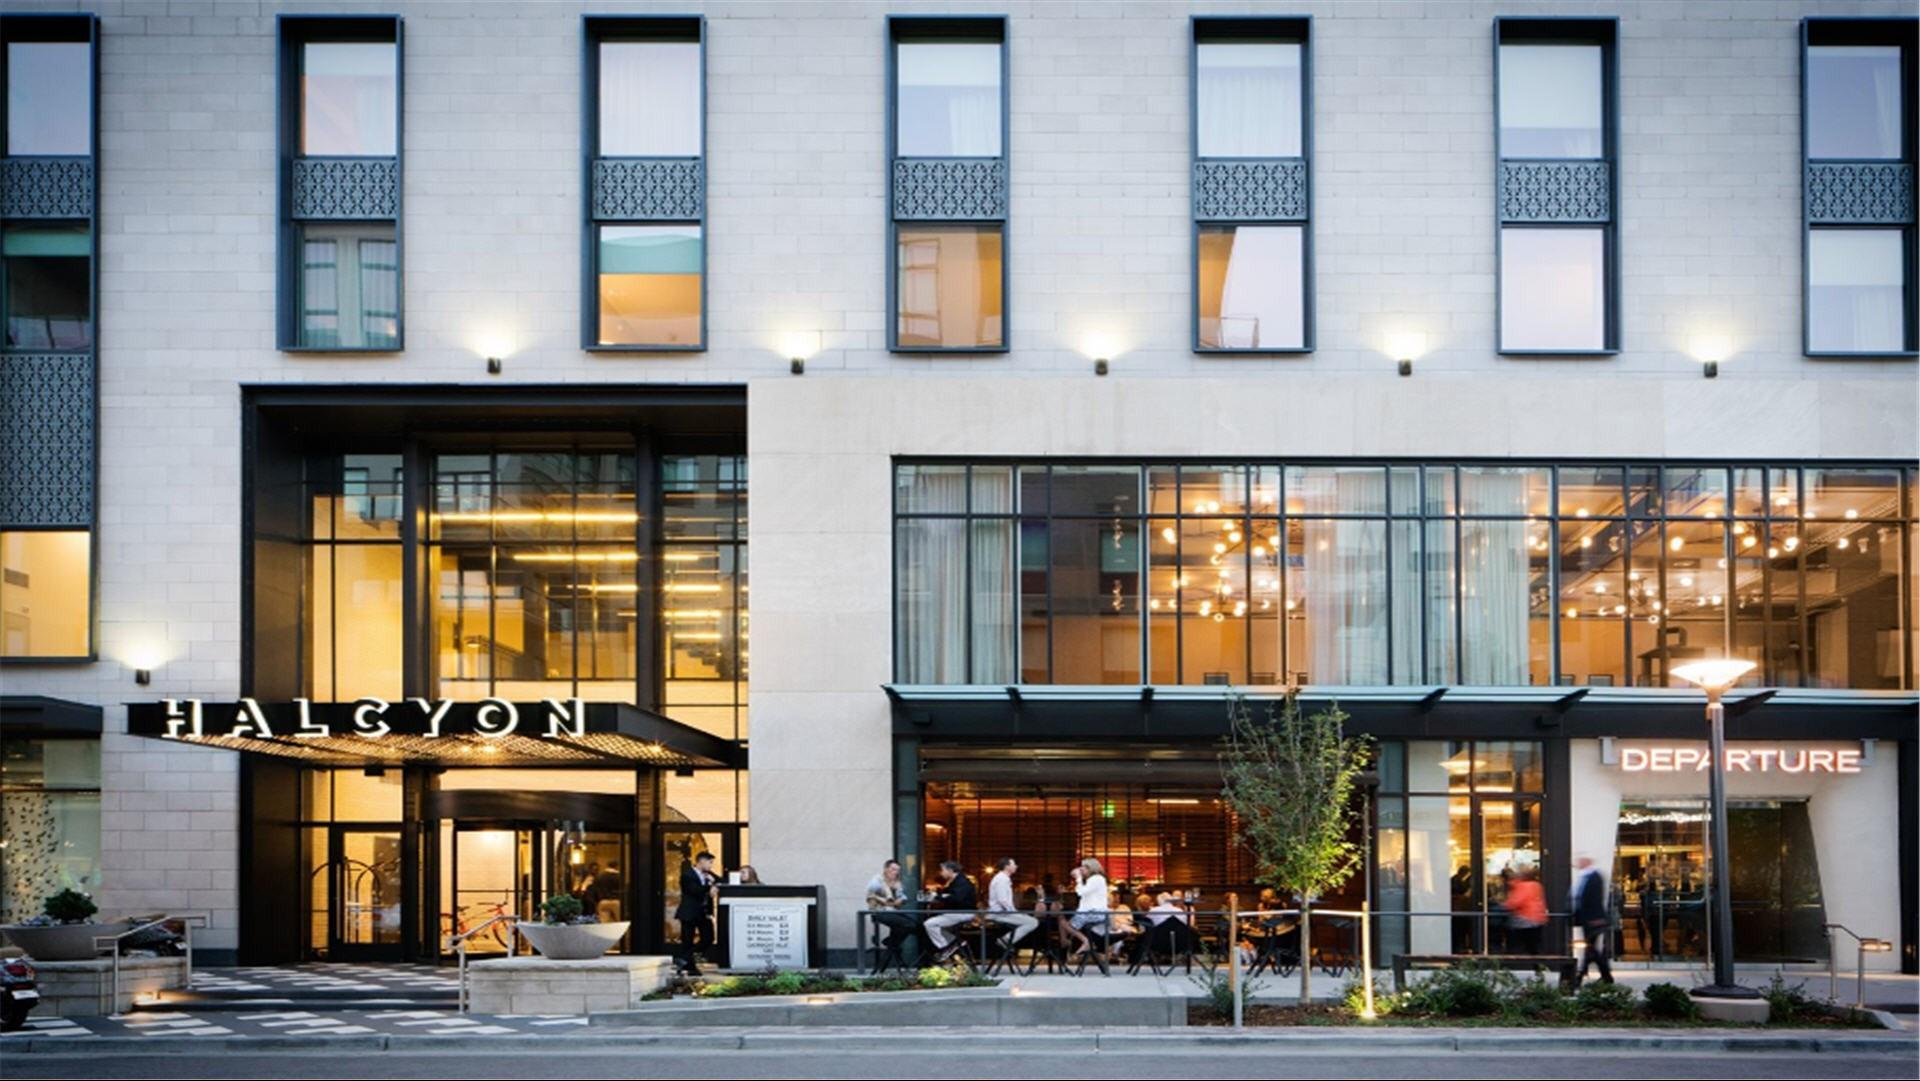 Meetings and Events at HALCYON, a hotel in Cherry Creek